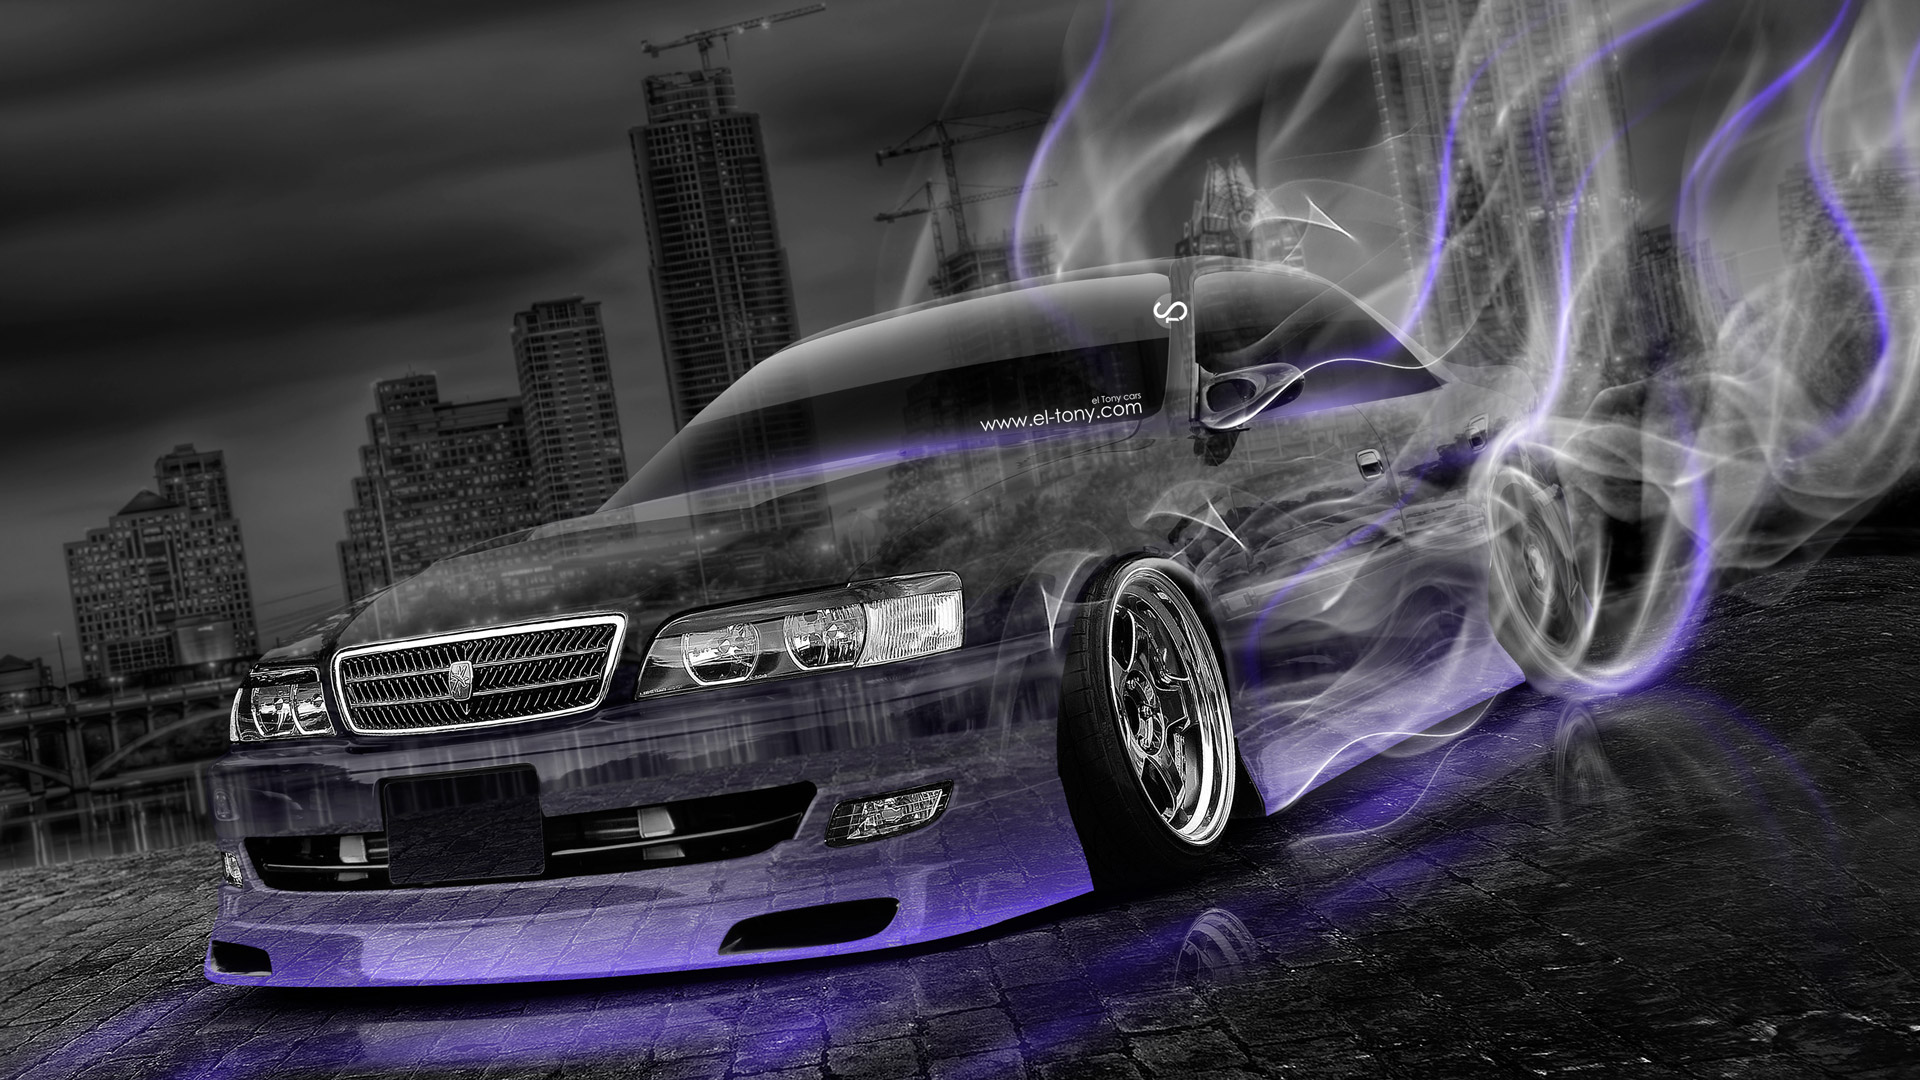 Toyota Chaser JZX100 Crystal City Smoke Drift Car 2014